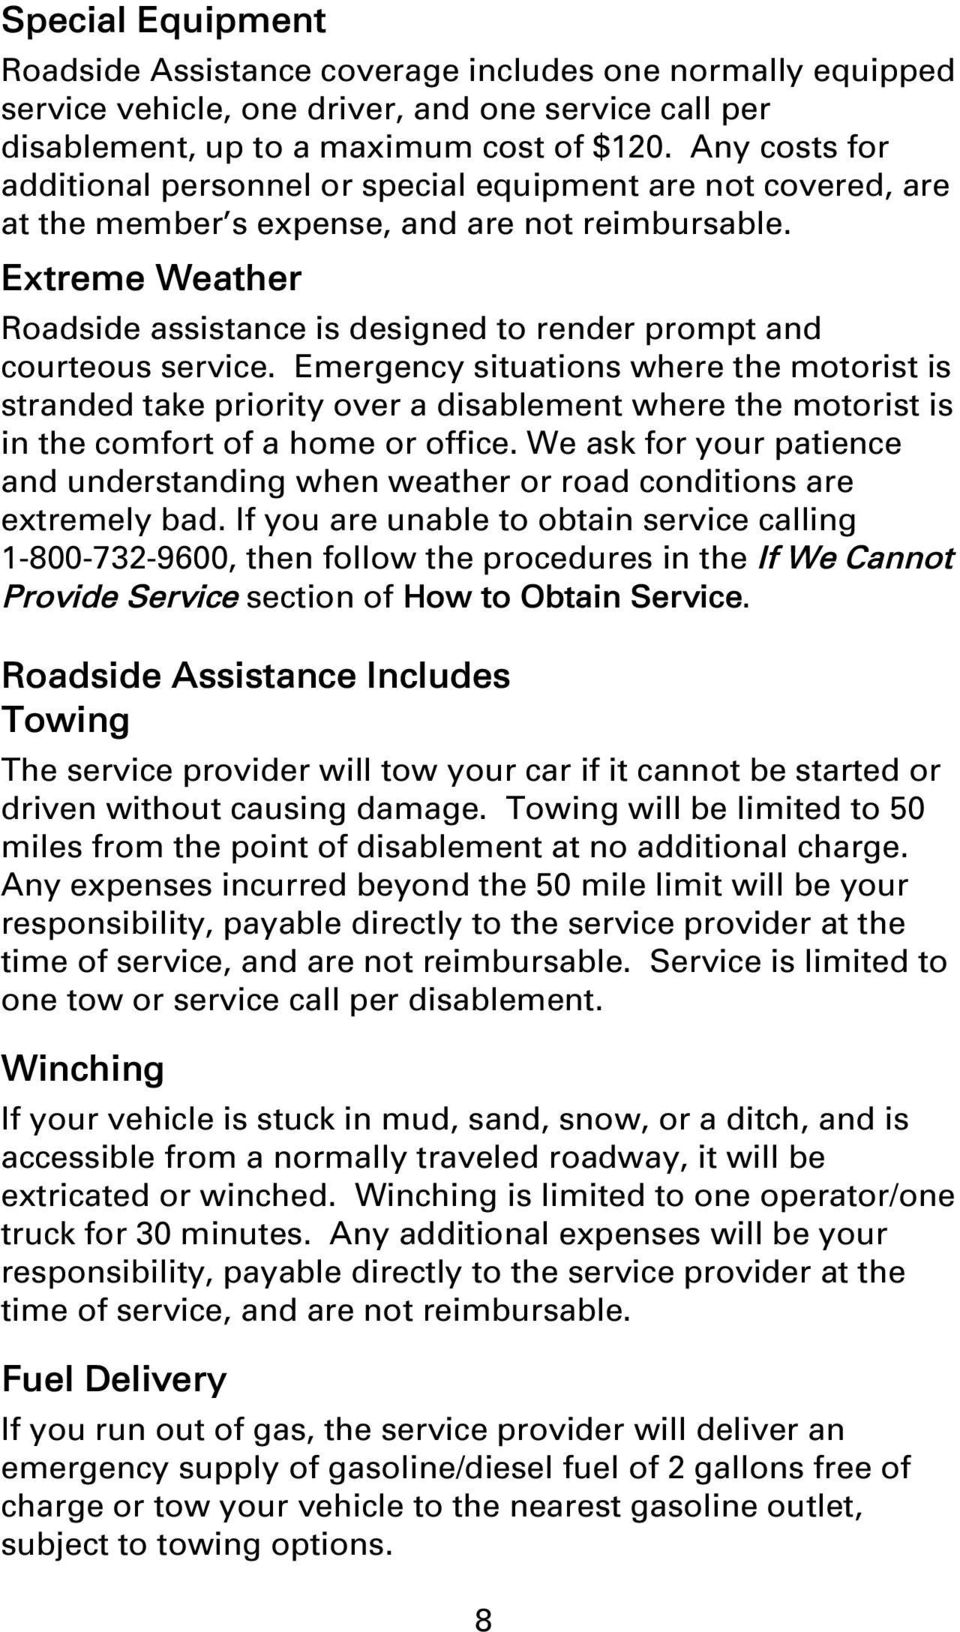 Extreme Weather Roadside assistance is designed to render prompt and courteous service.